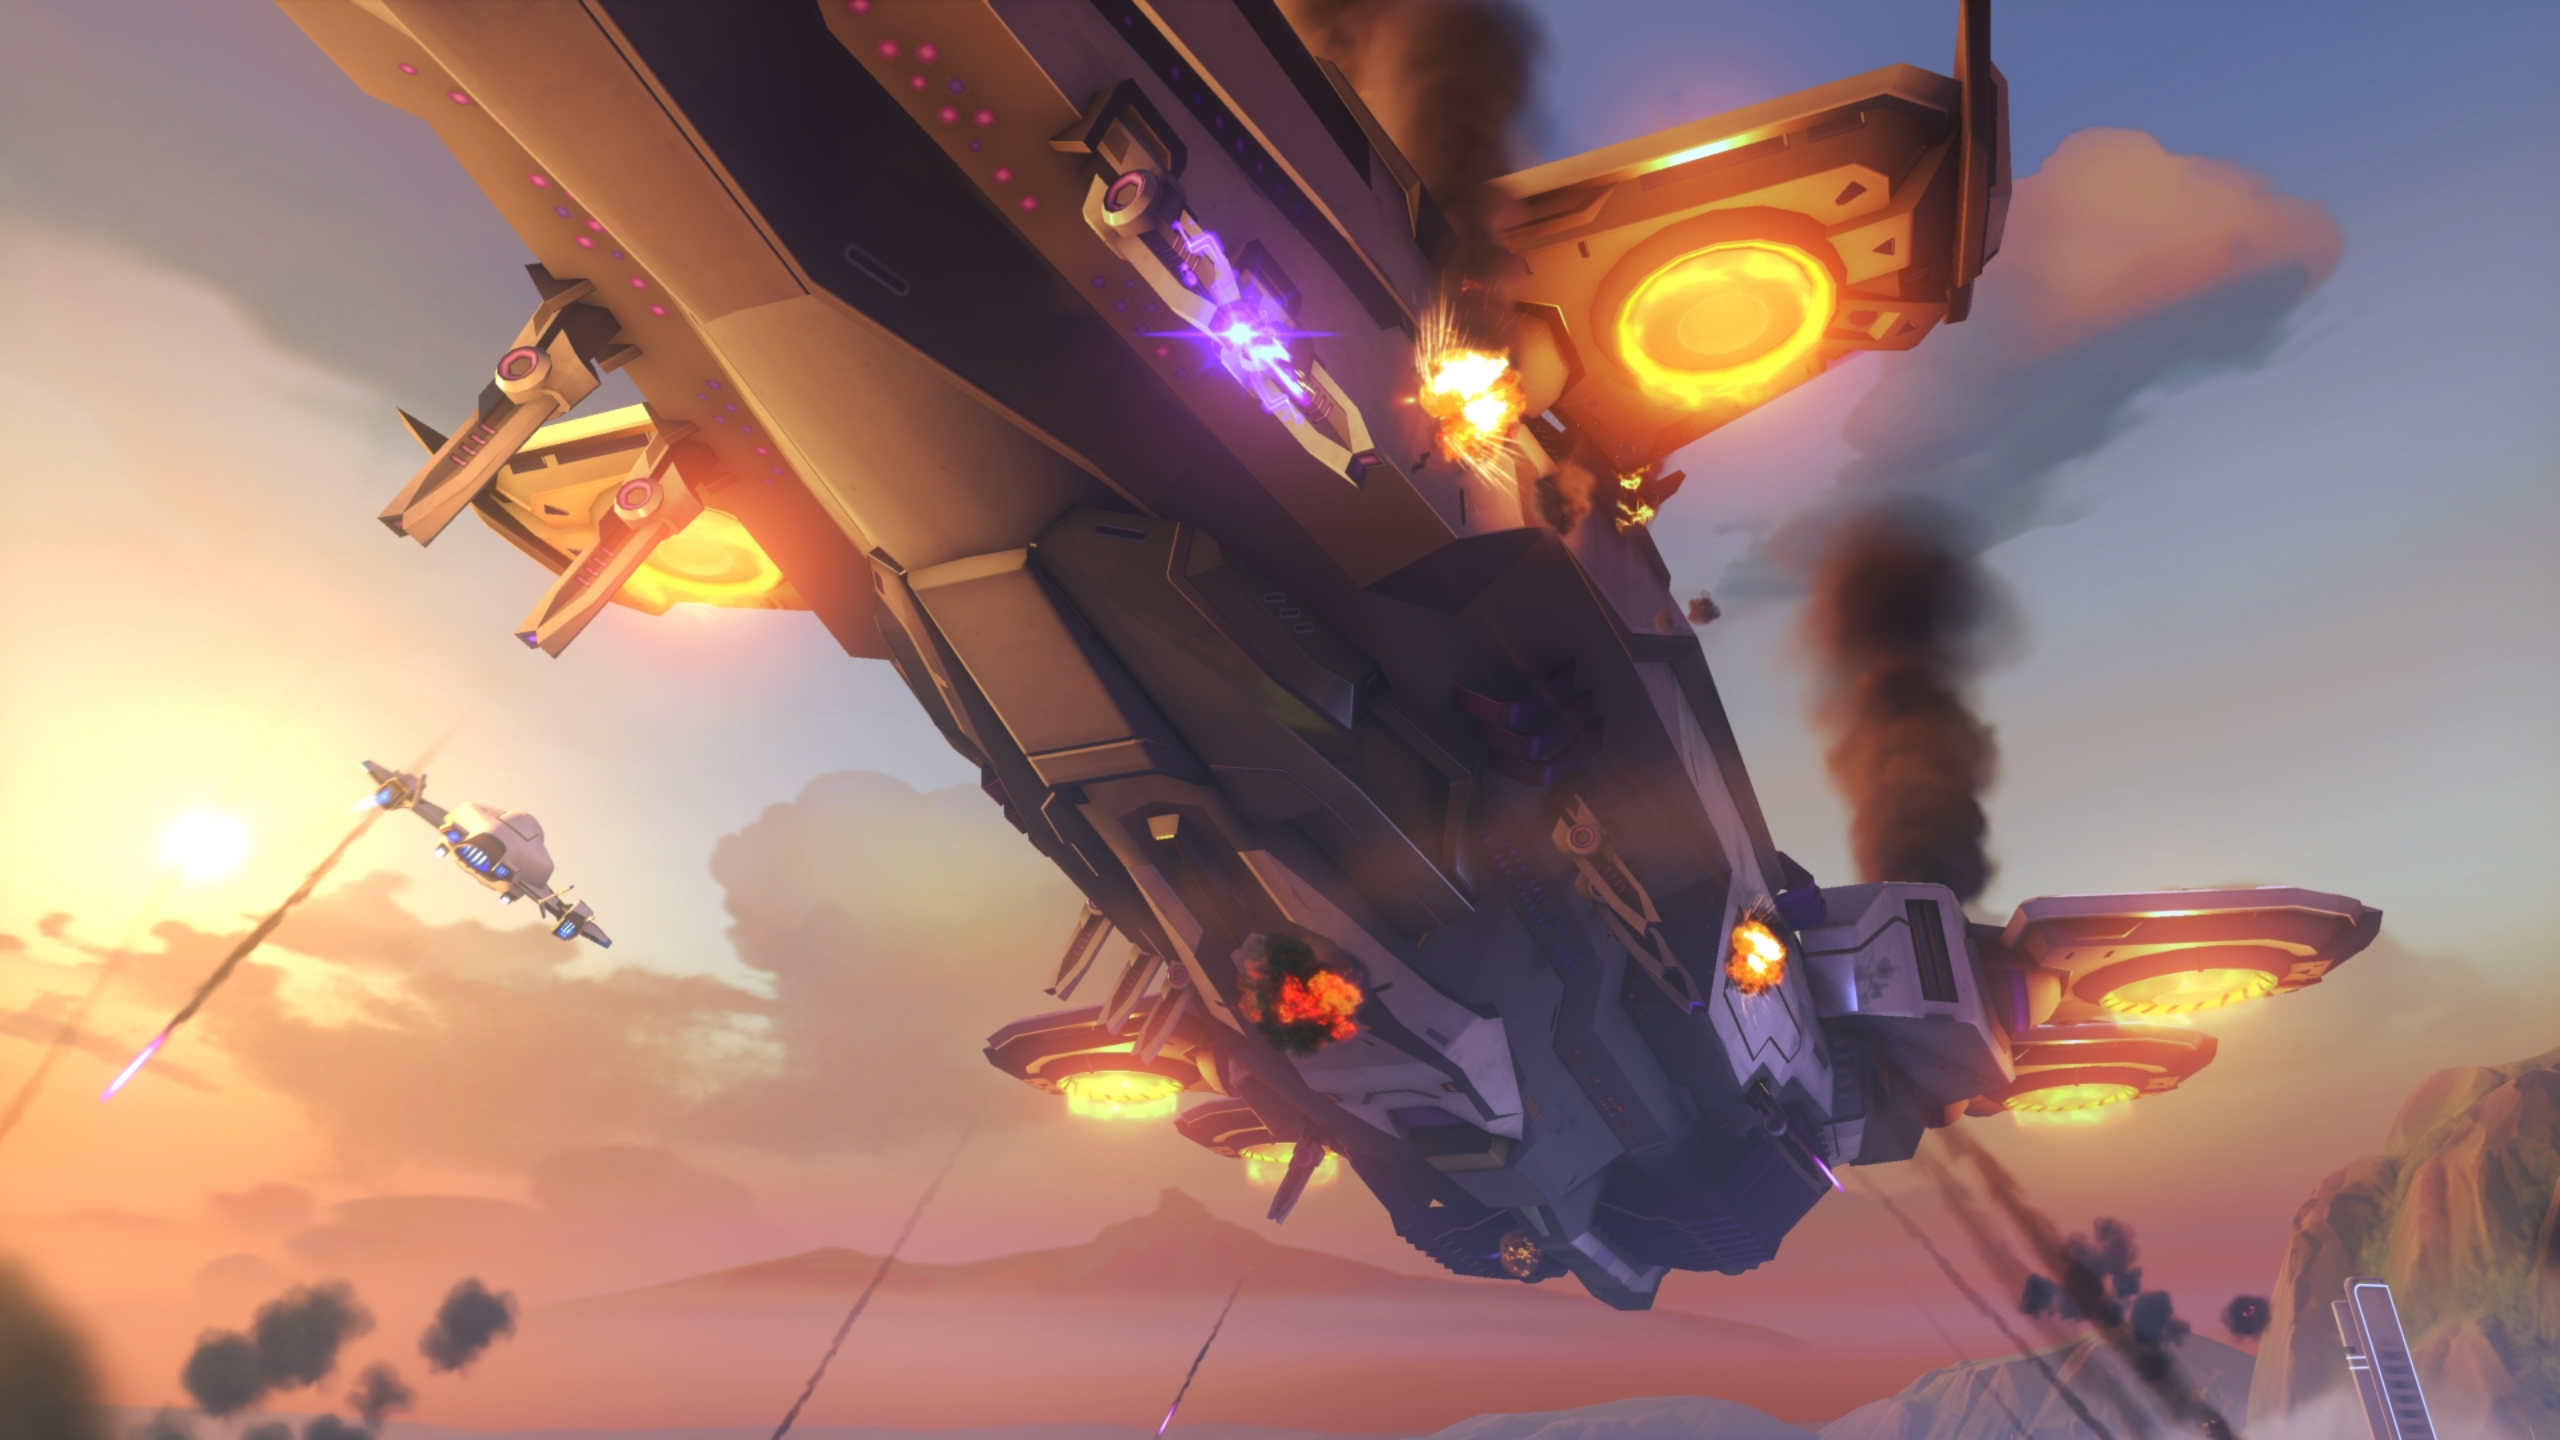 An omnic carrier in the sky about Rio, showcased in the BlizzCon 2019 build of Overwatch 2.